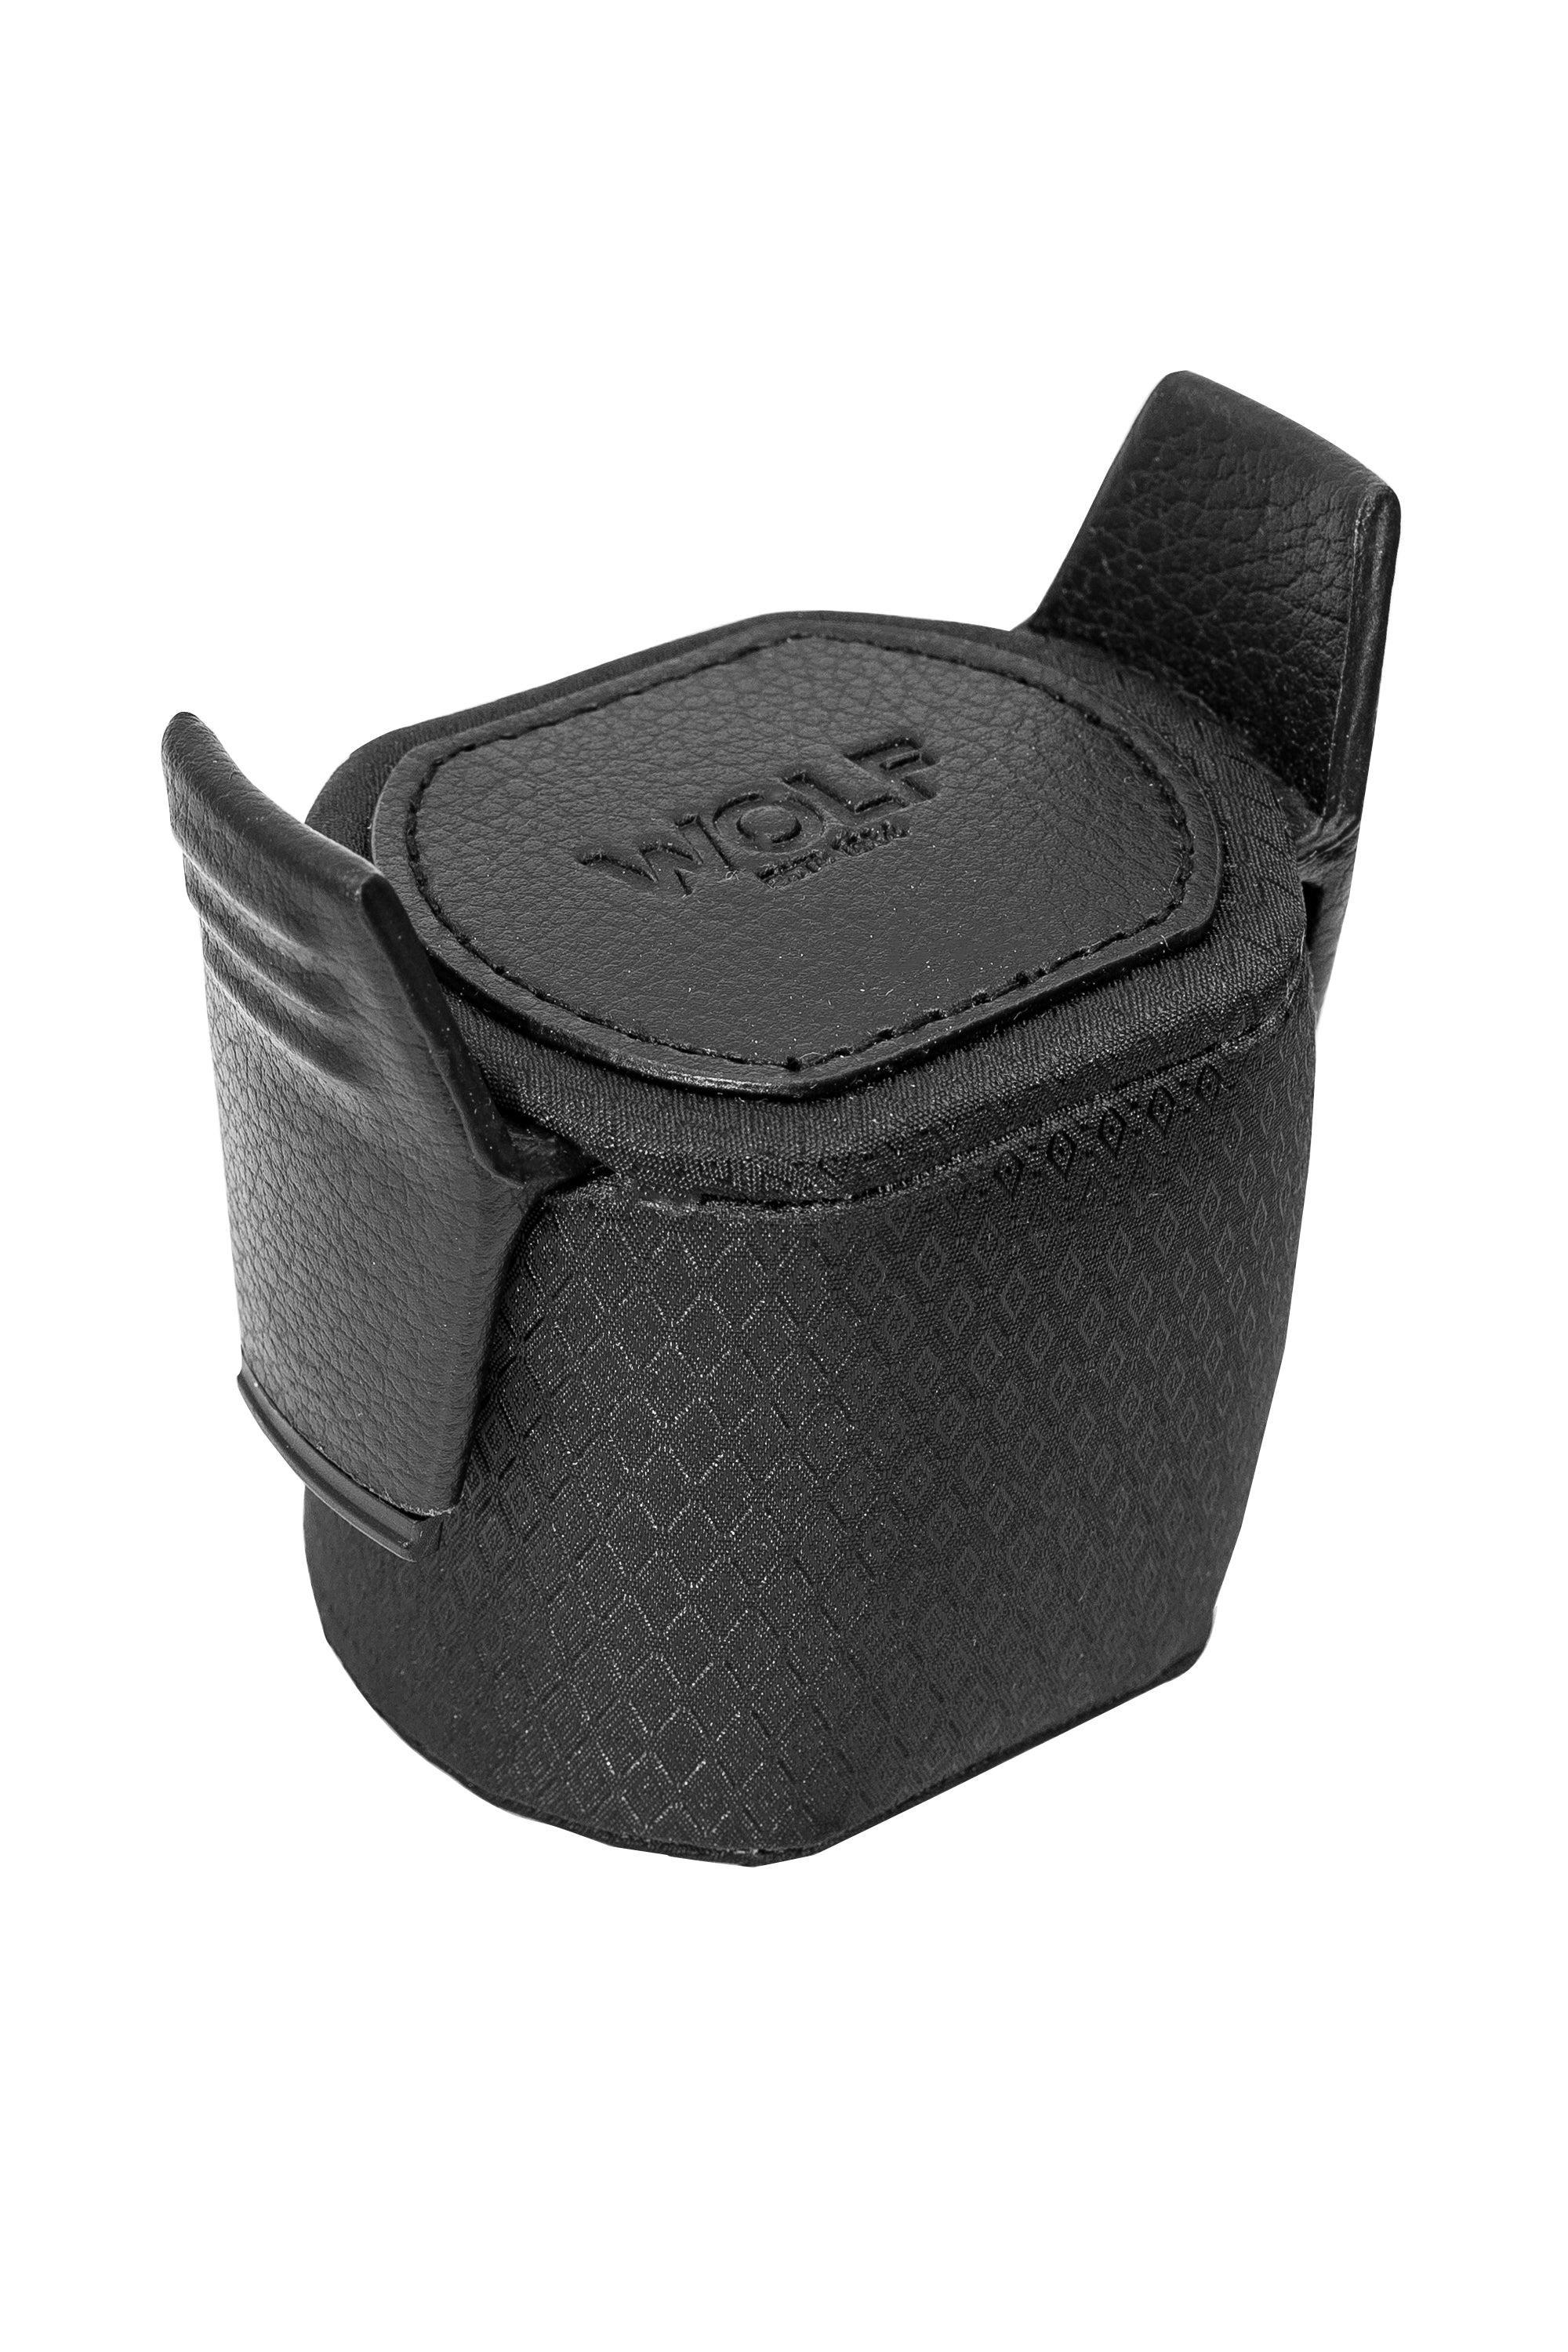 WOLF Replacement Cuff for WOLF Watch Winders in BLACK